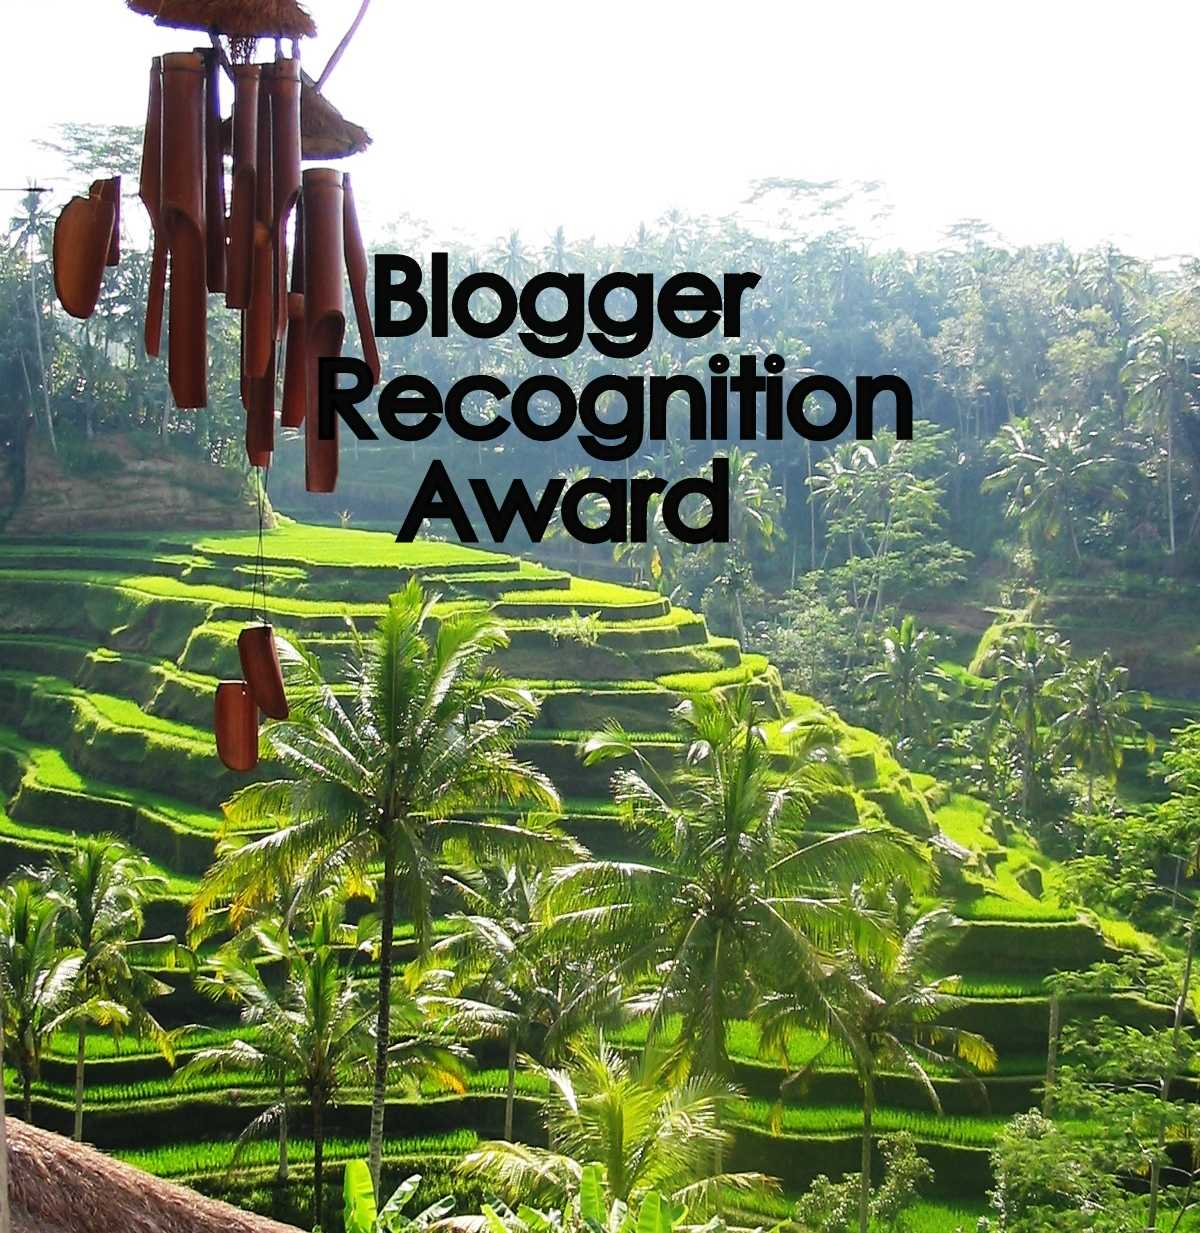 nomina Blogger Recognition Award 2017